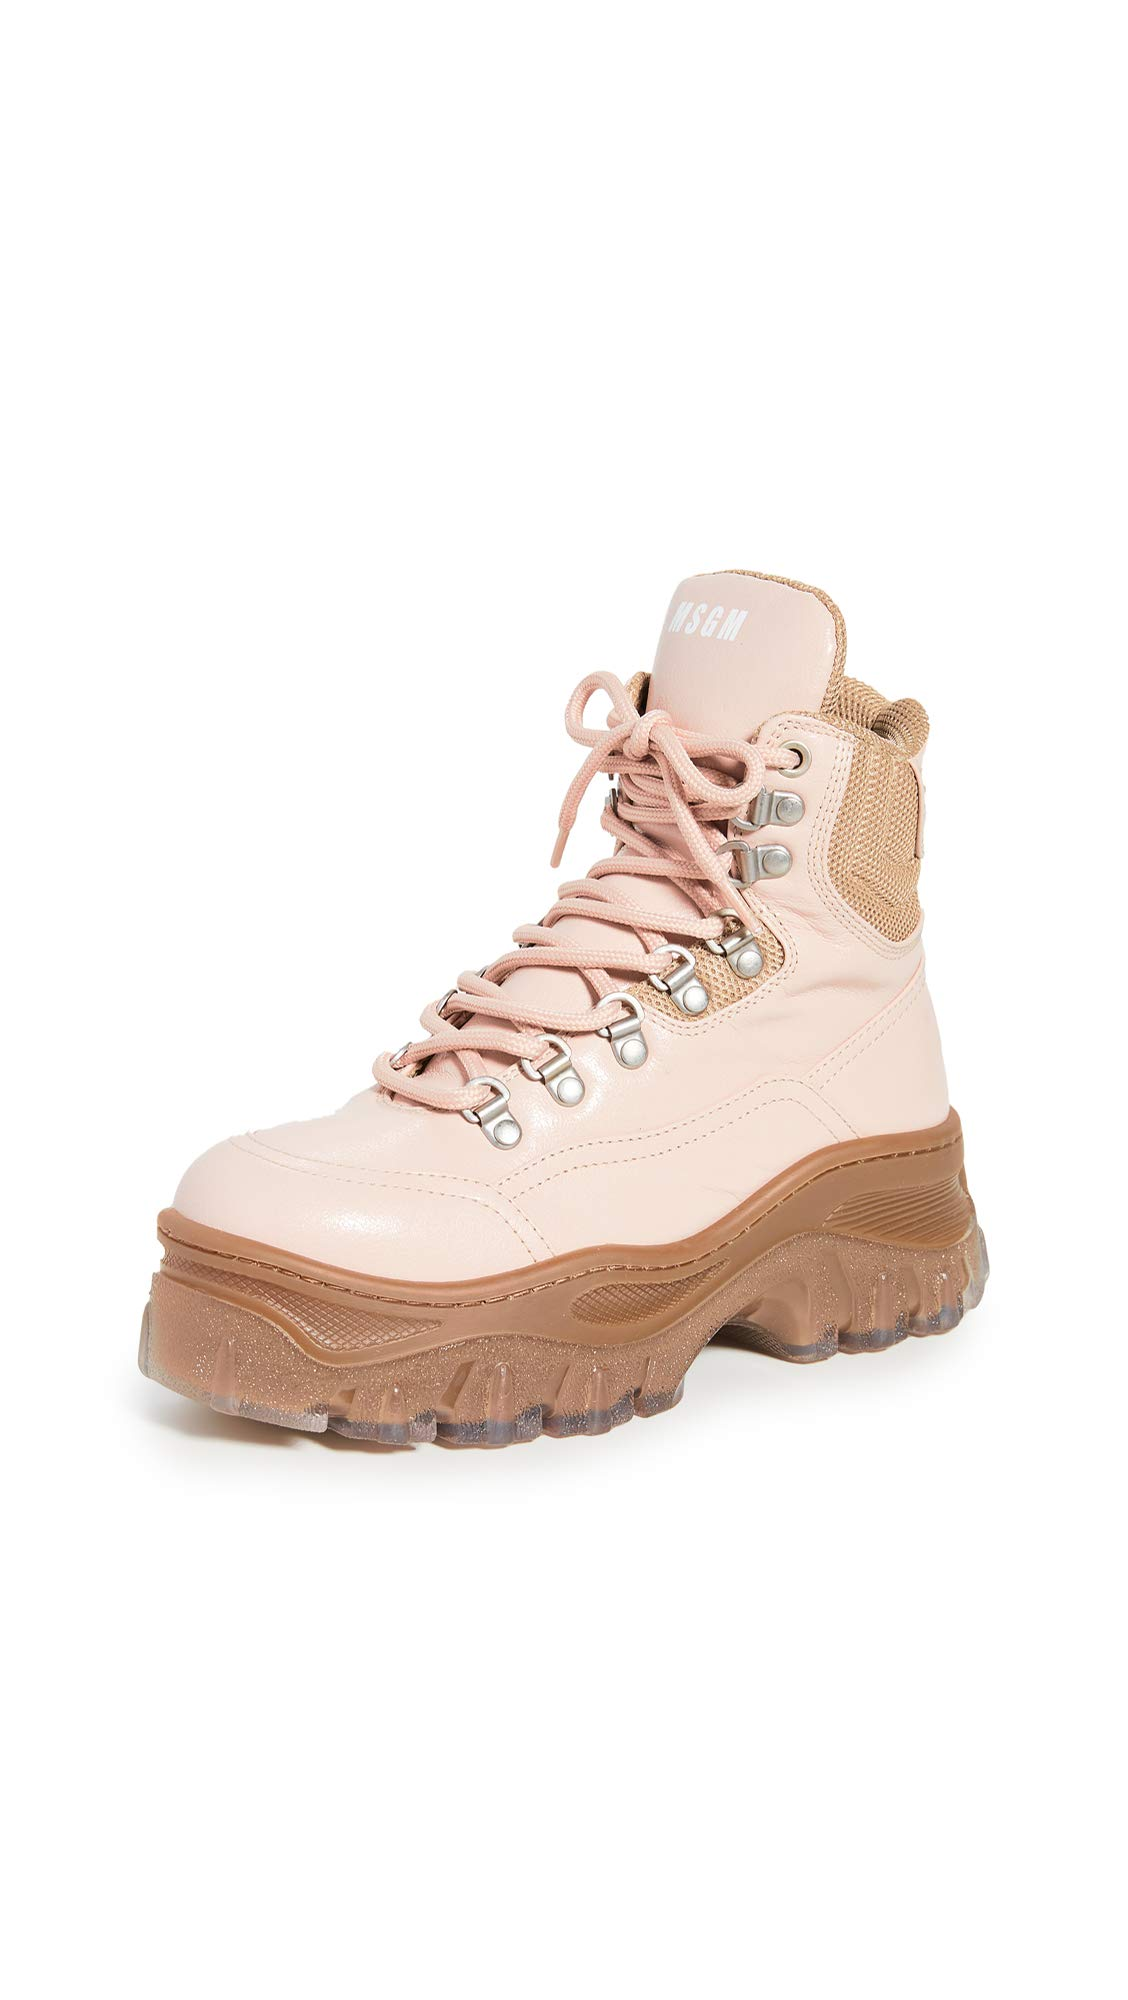 MSGM Women's Hiking Boots